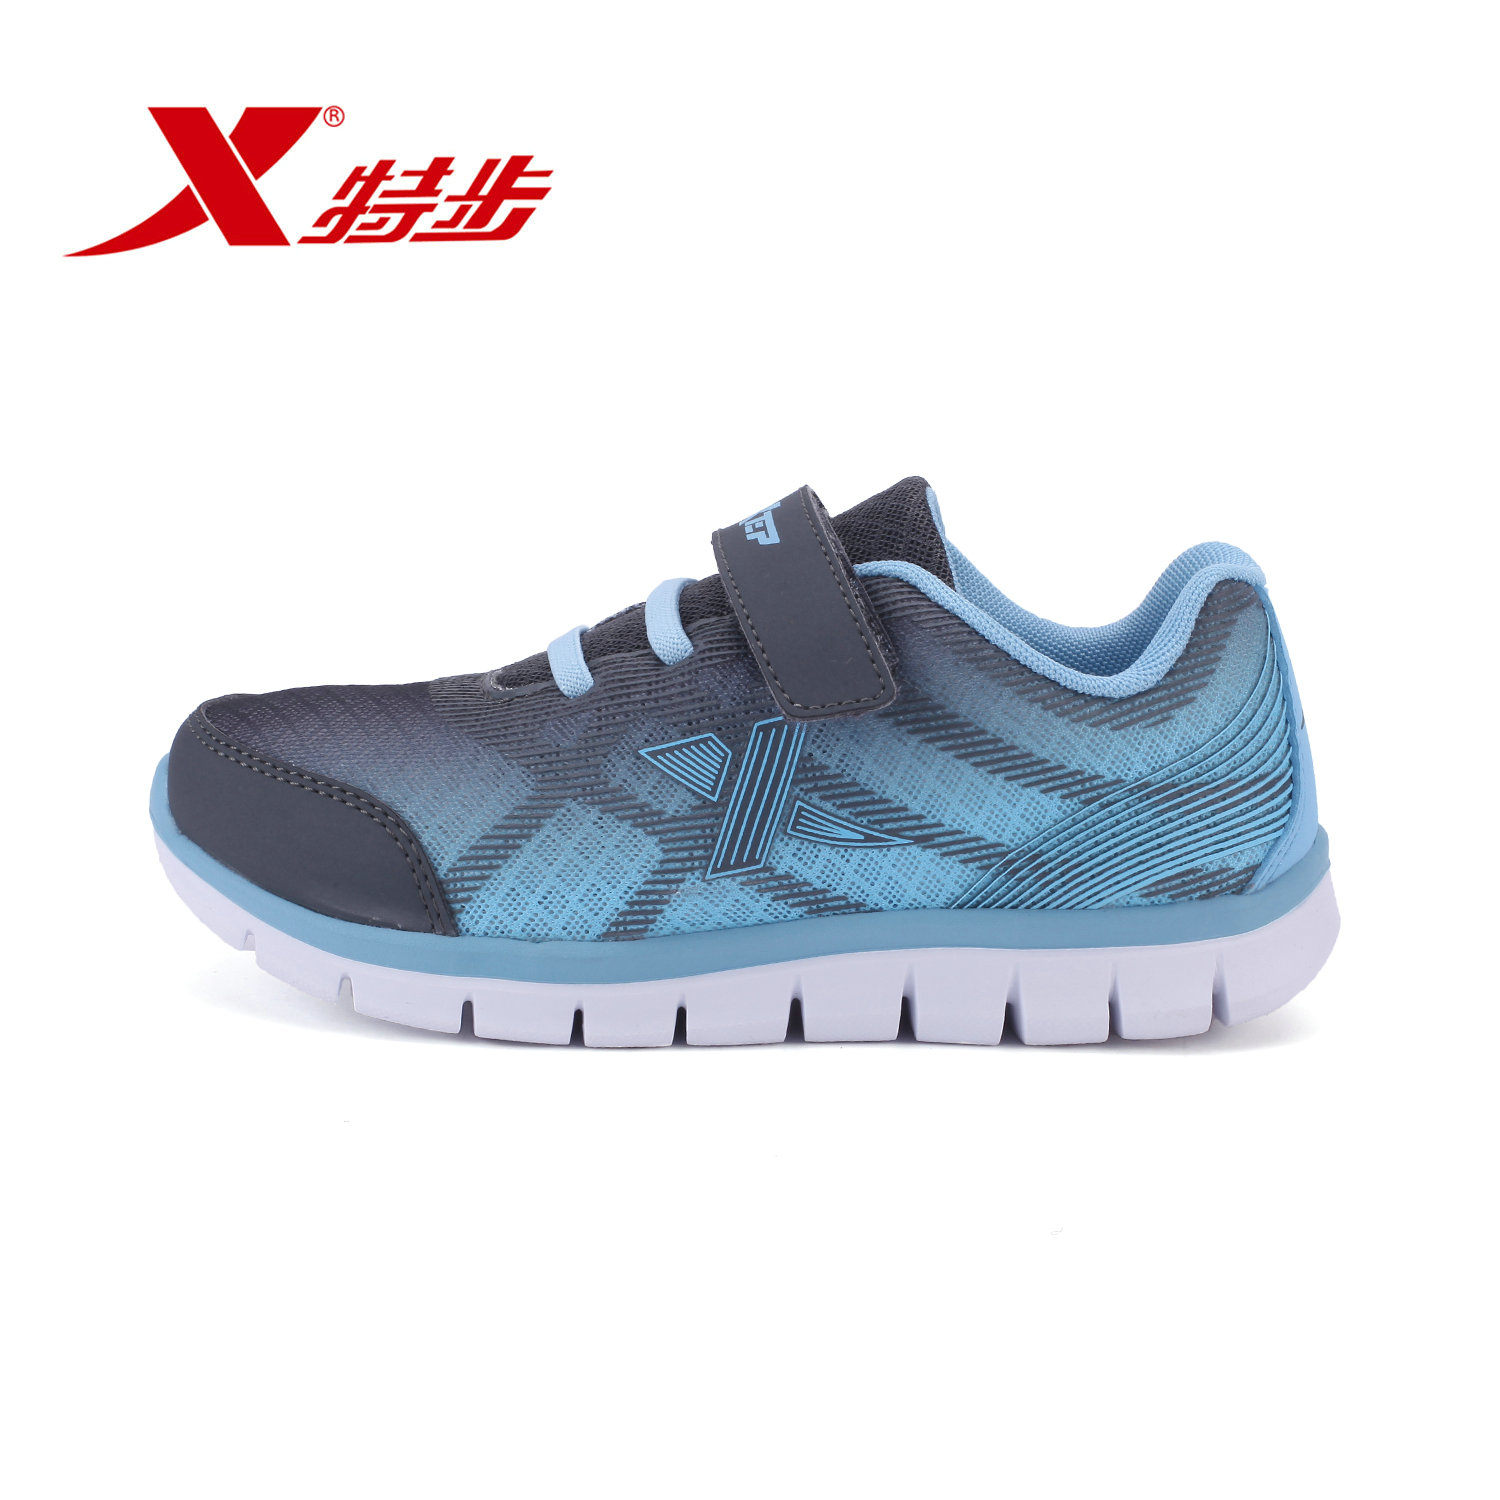 [Official] xtep girls sports shoes authentic 2015 autumn new running shoes slip resistant lightweight running shoes jogging shoes